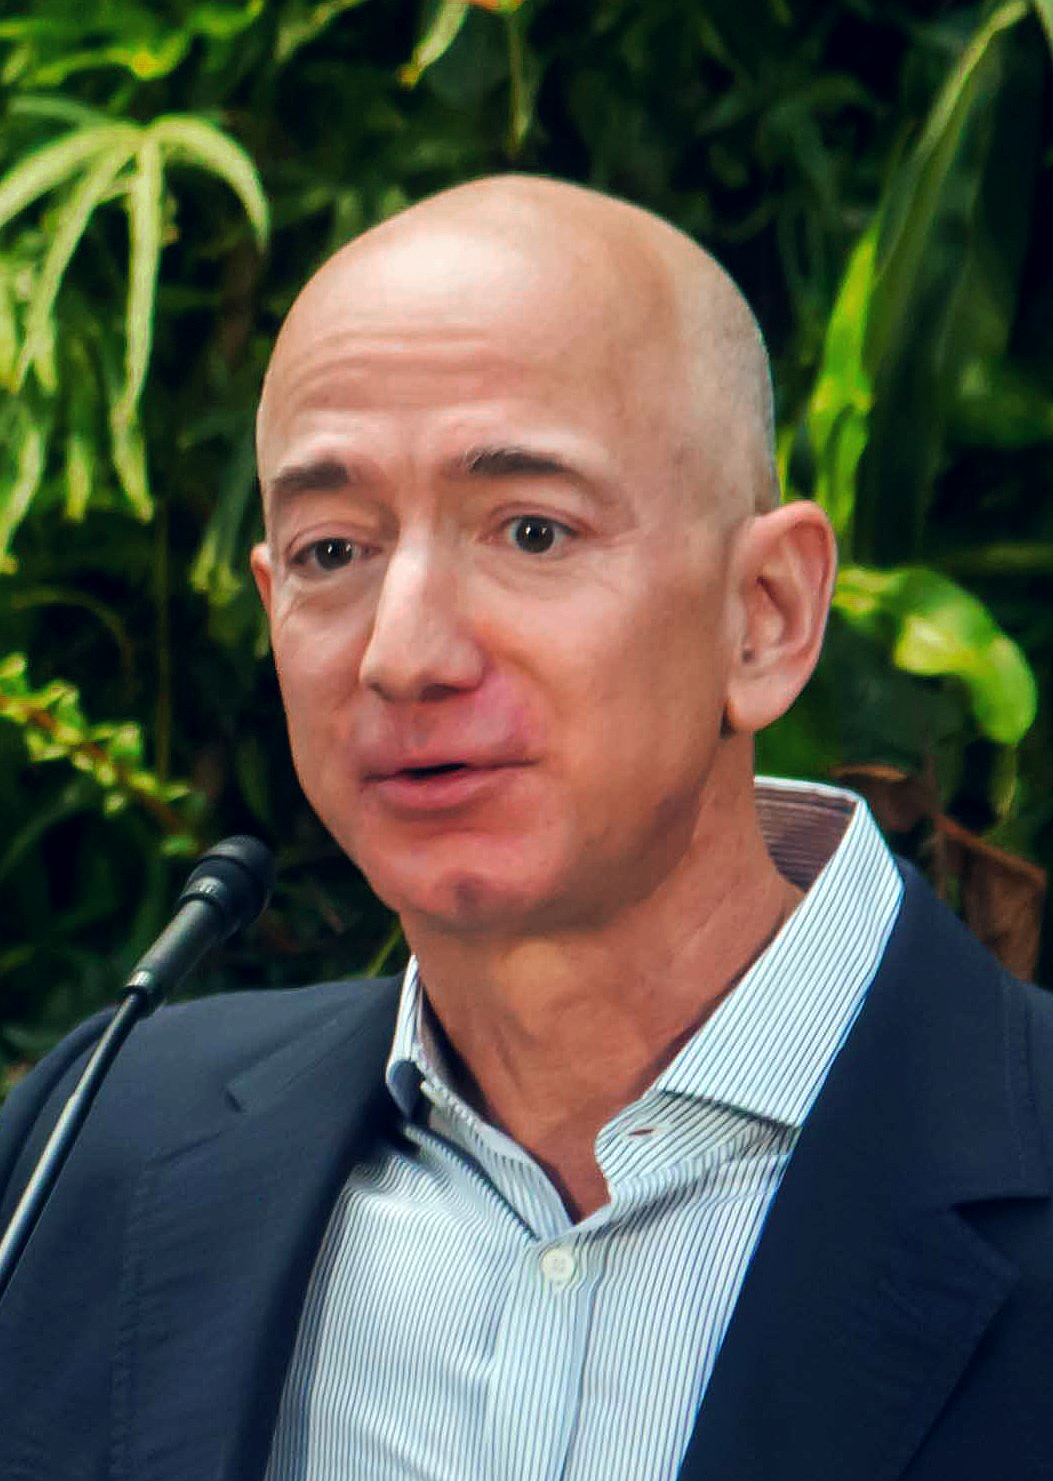 Jeff Bezos at Amazon Spheres Grand Opening in Seattle 2018 39074799225 cropped